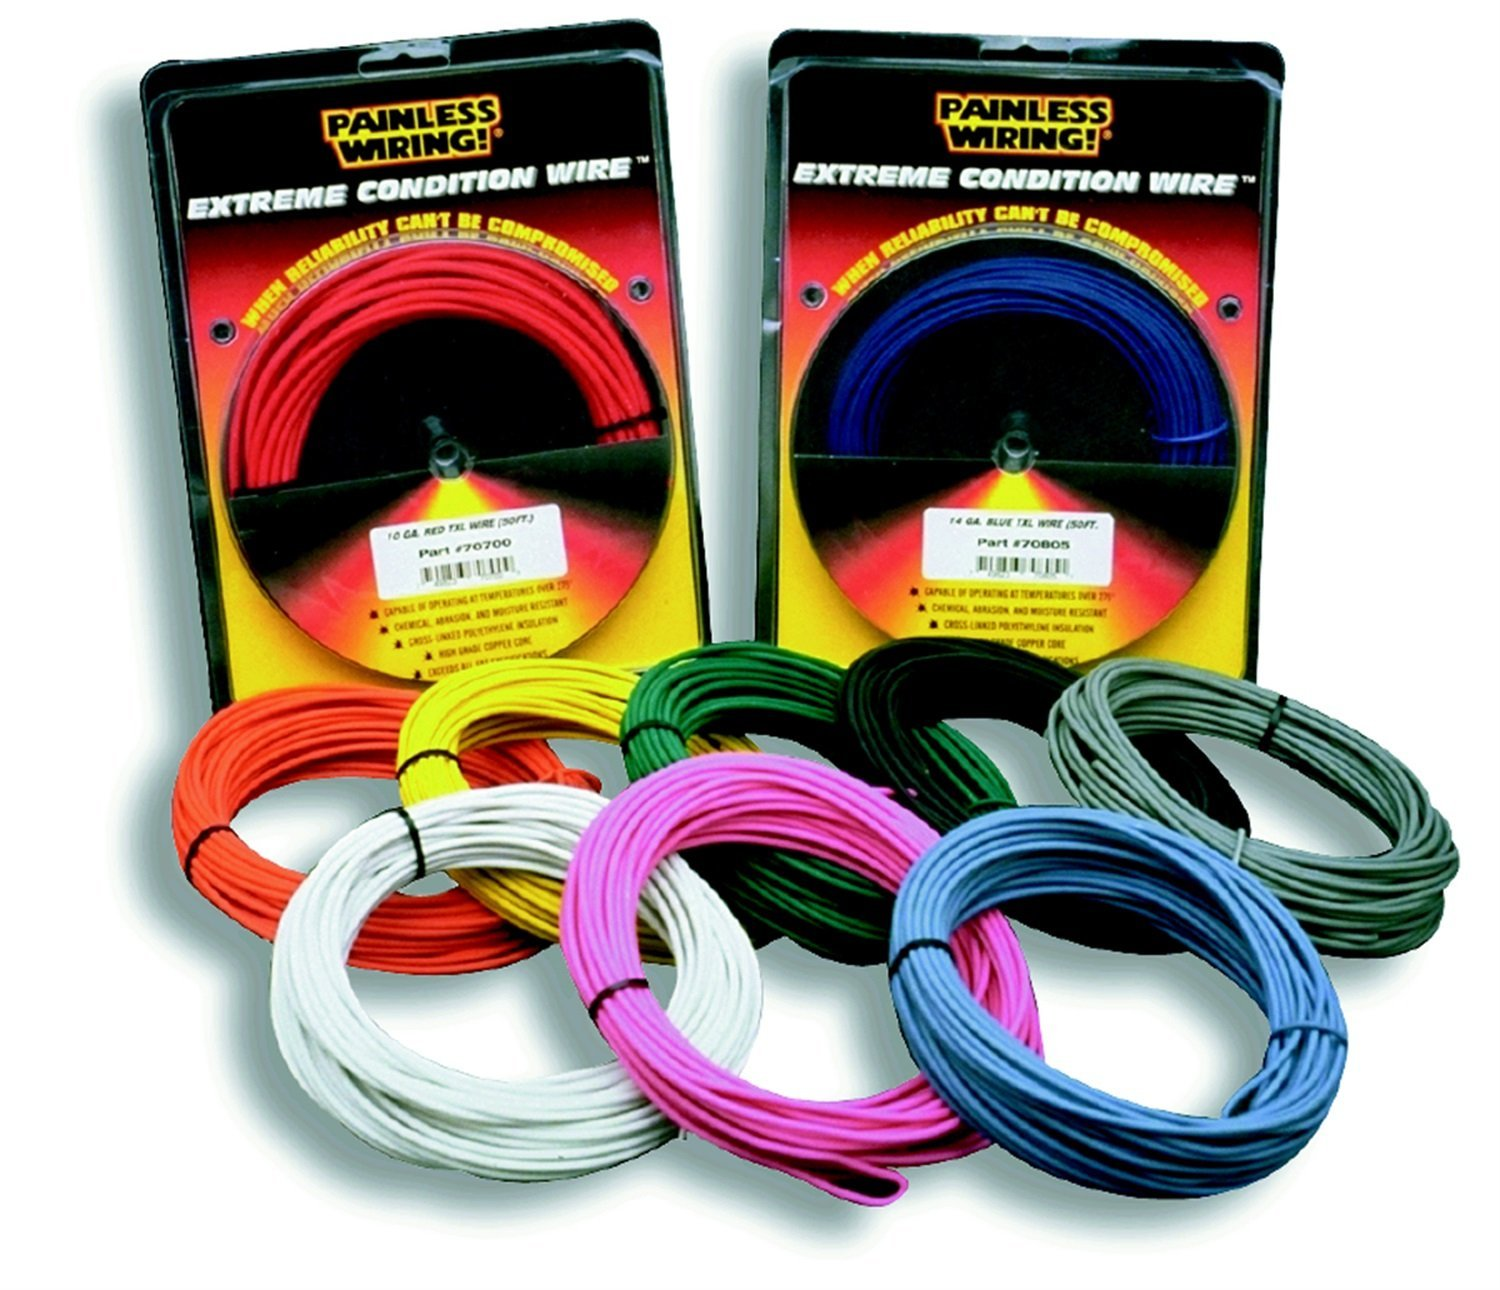 812pqBzSwRL._SL1500_ amazon com painless 71807 14 gauge gray txl wire (25 ft ) automotive